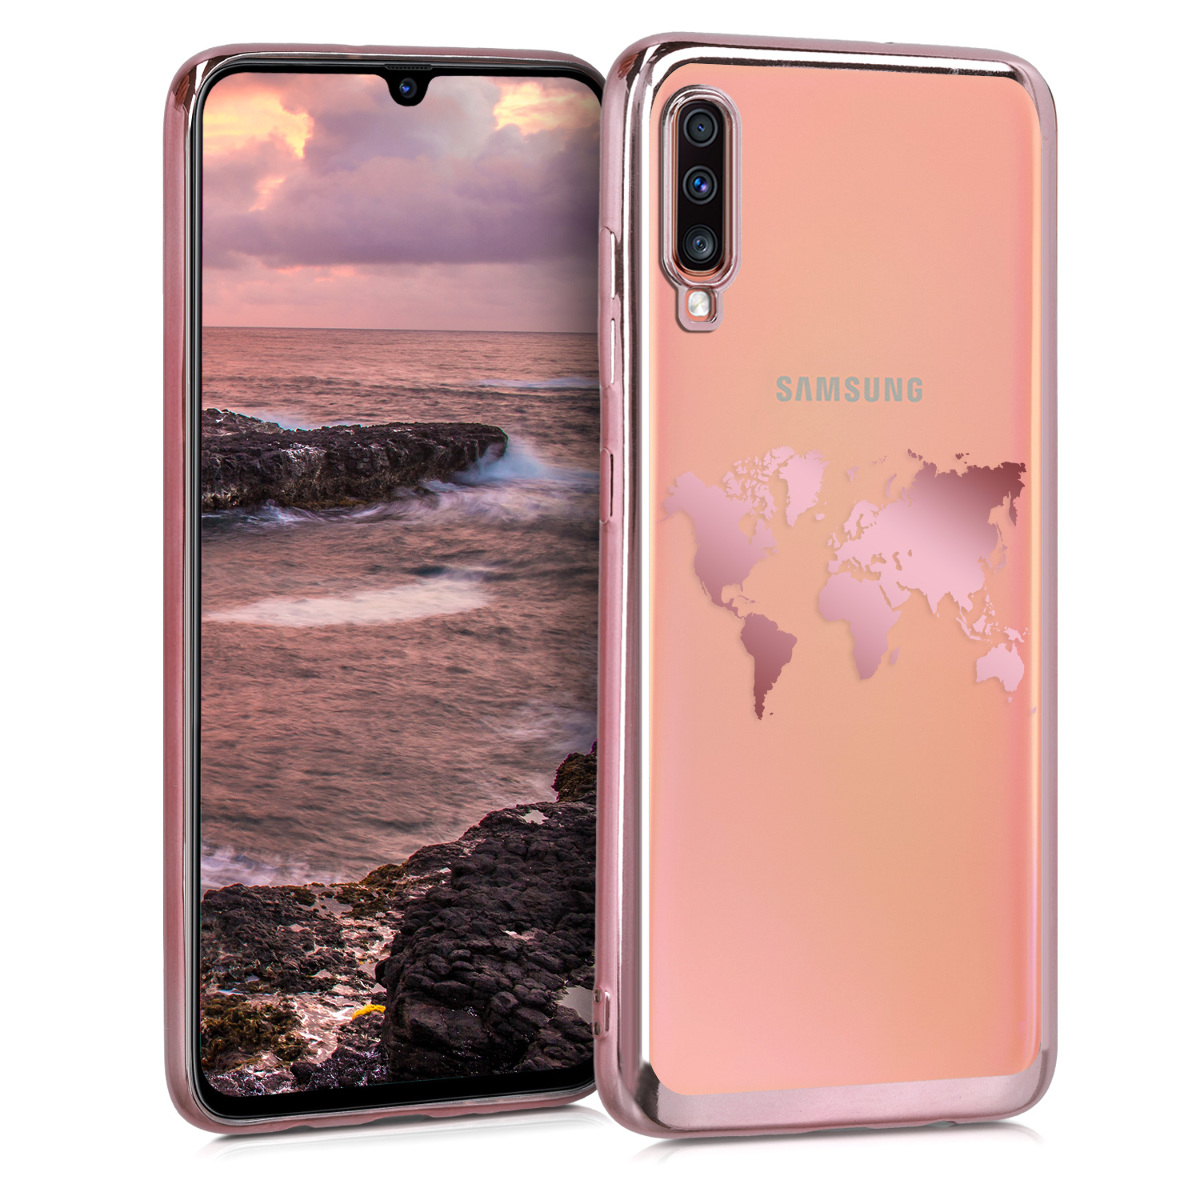 KW Θήκη Σιλικόνης Samsung Galaxy A70 - Travel Outline Rose Gold / Transparent / Rose Gold (49540.03)